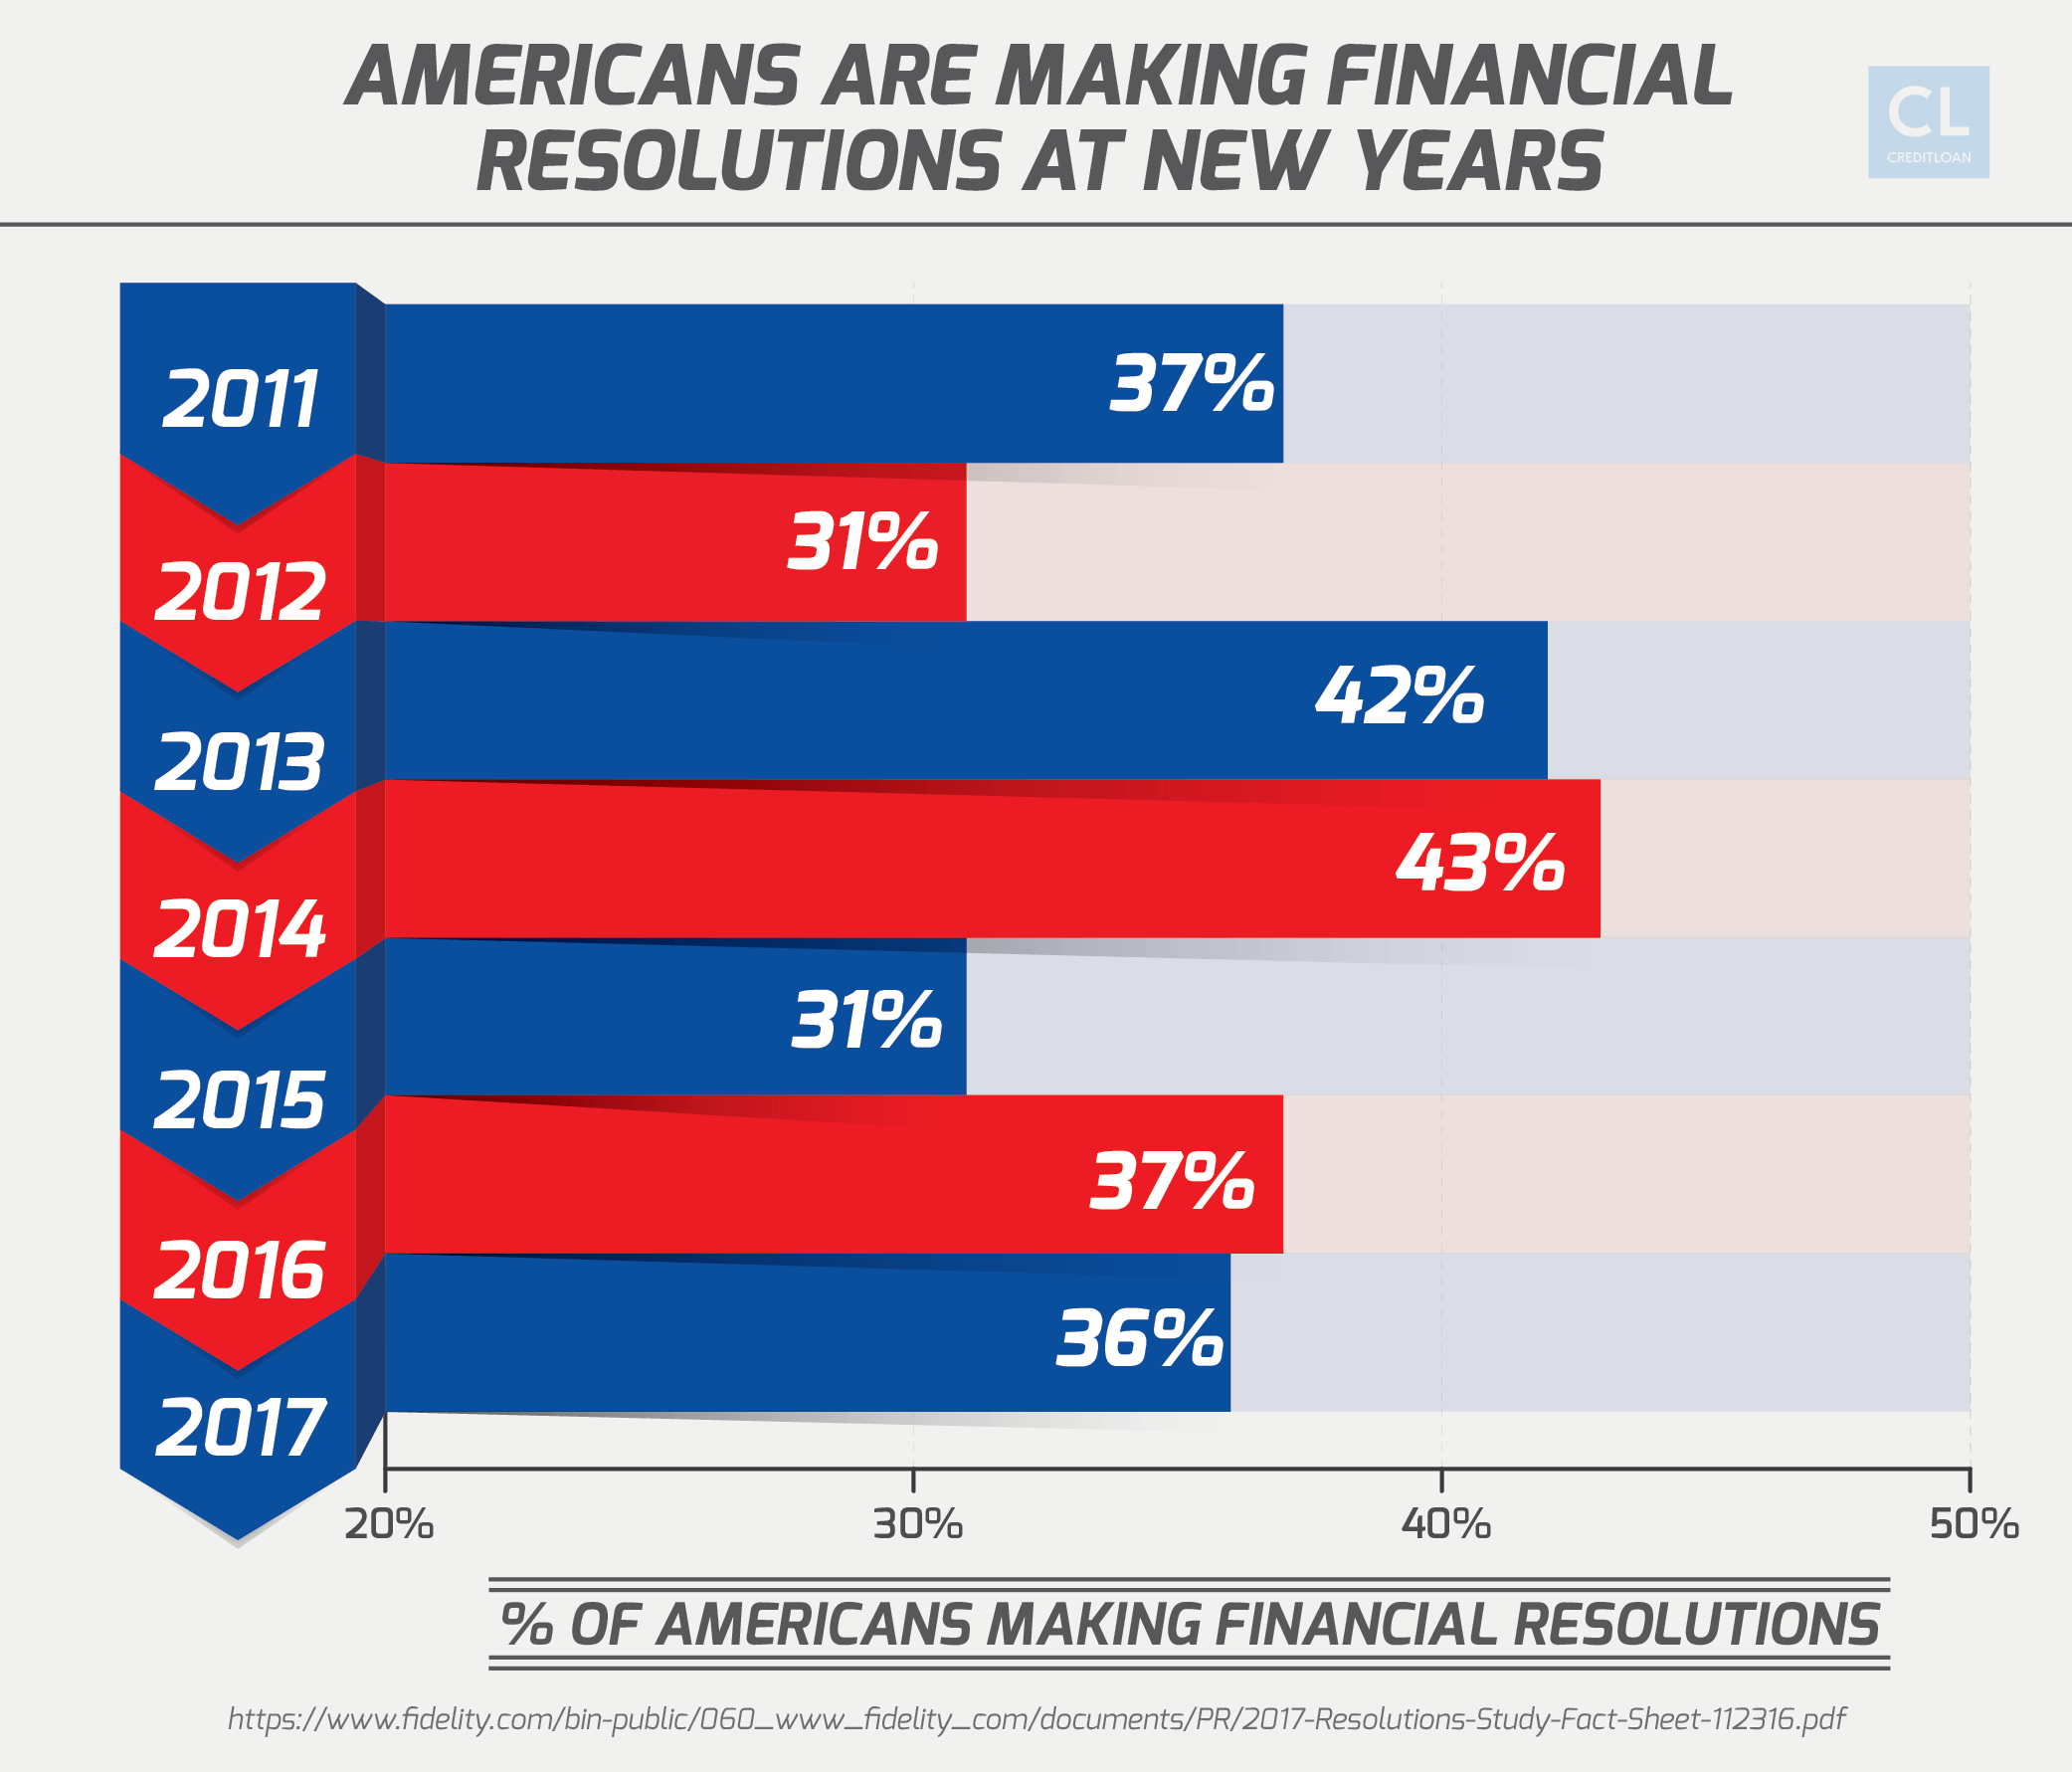 America Financial Resolutions at New Years stats